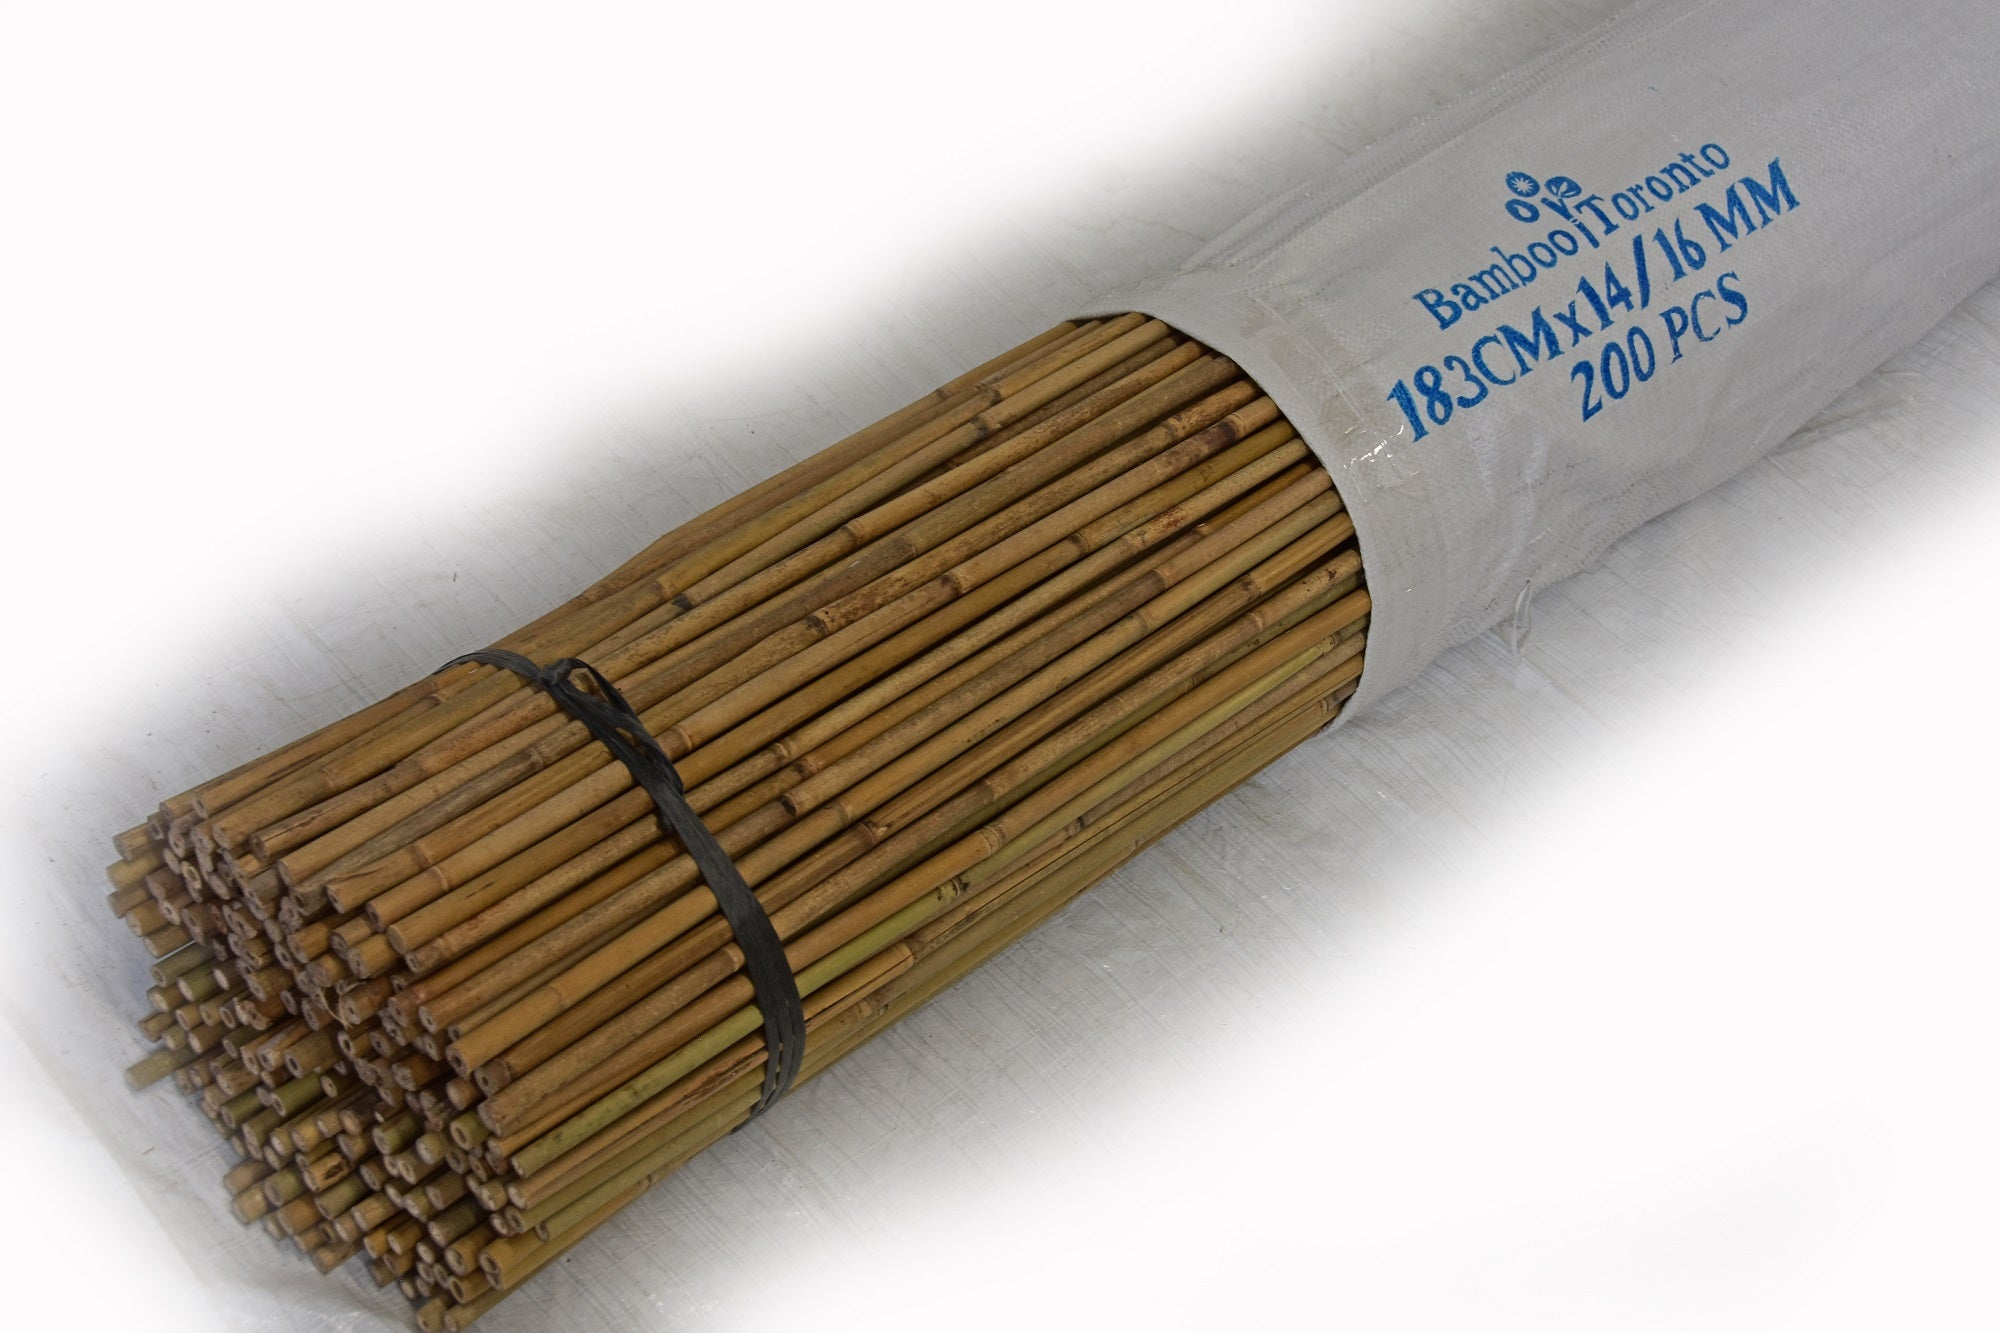 Tonkin Bamboo Pole 14-16mm x 4 to 7' Bundle of 200 - Bamboo Toronto Store